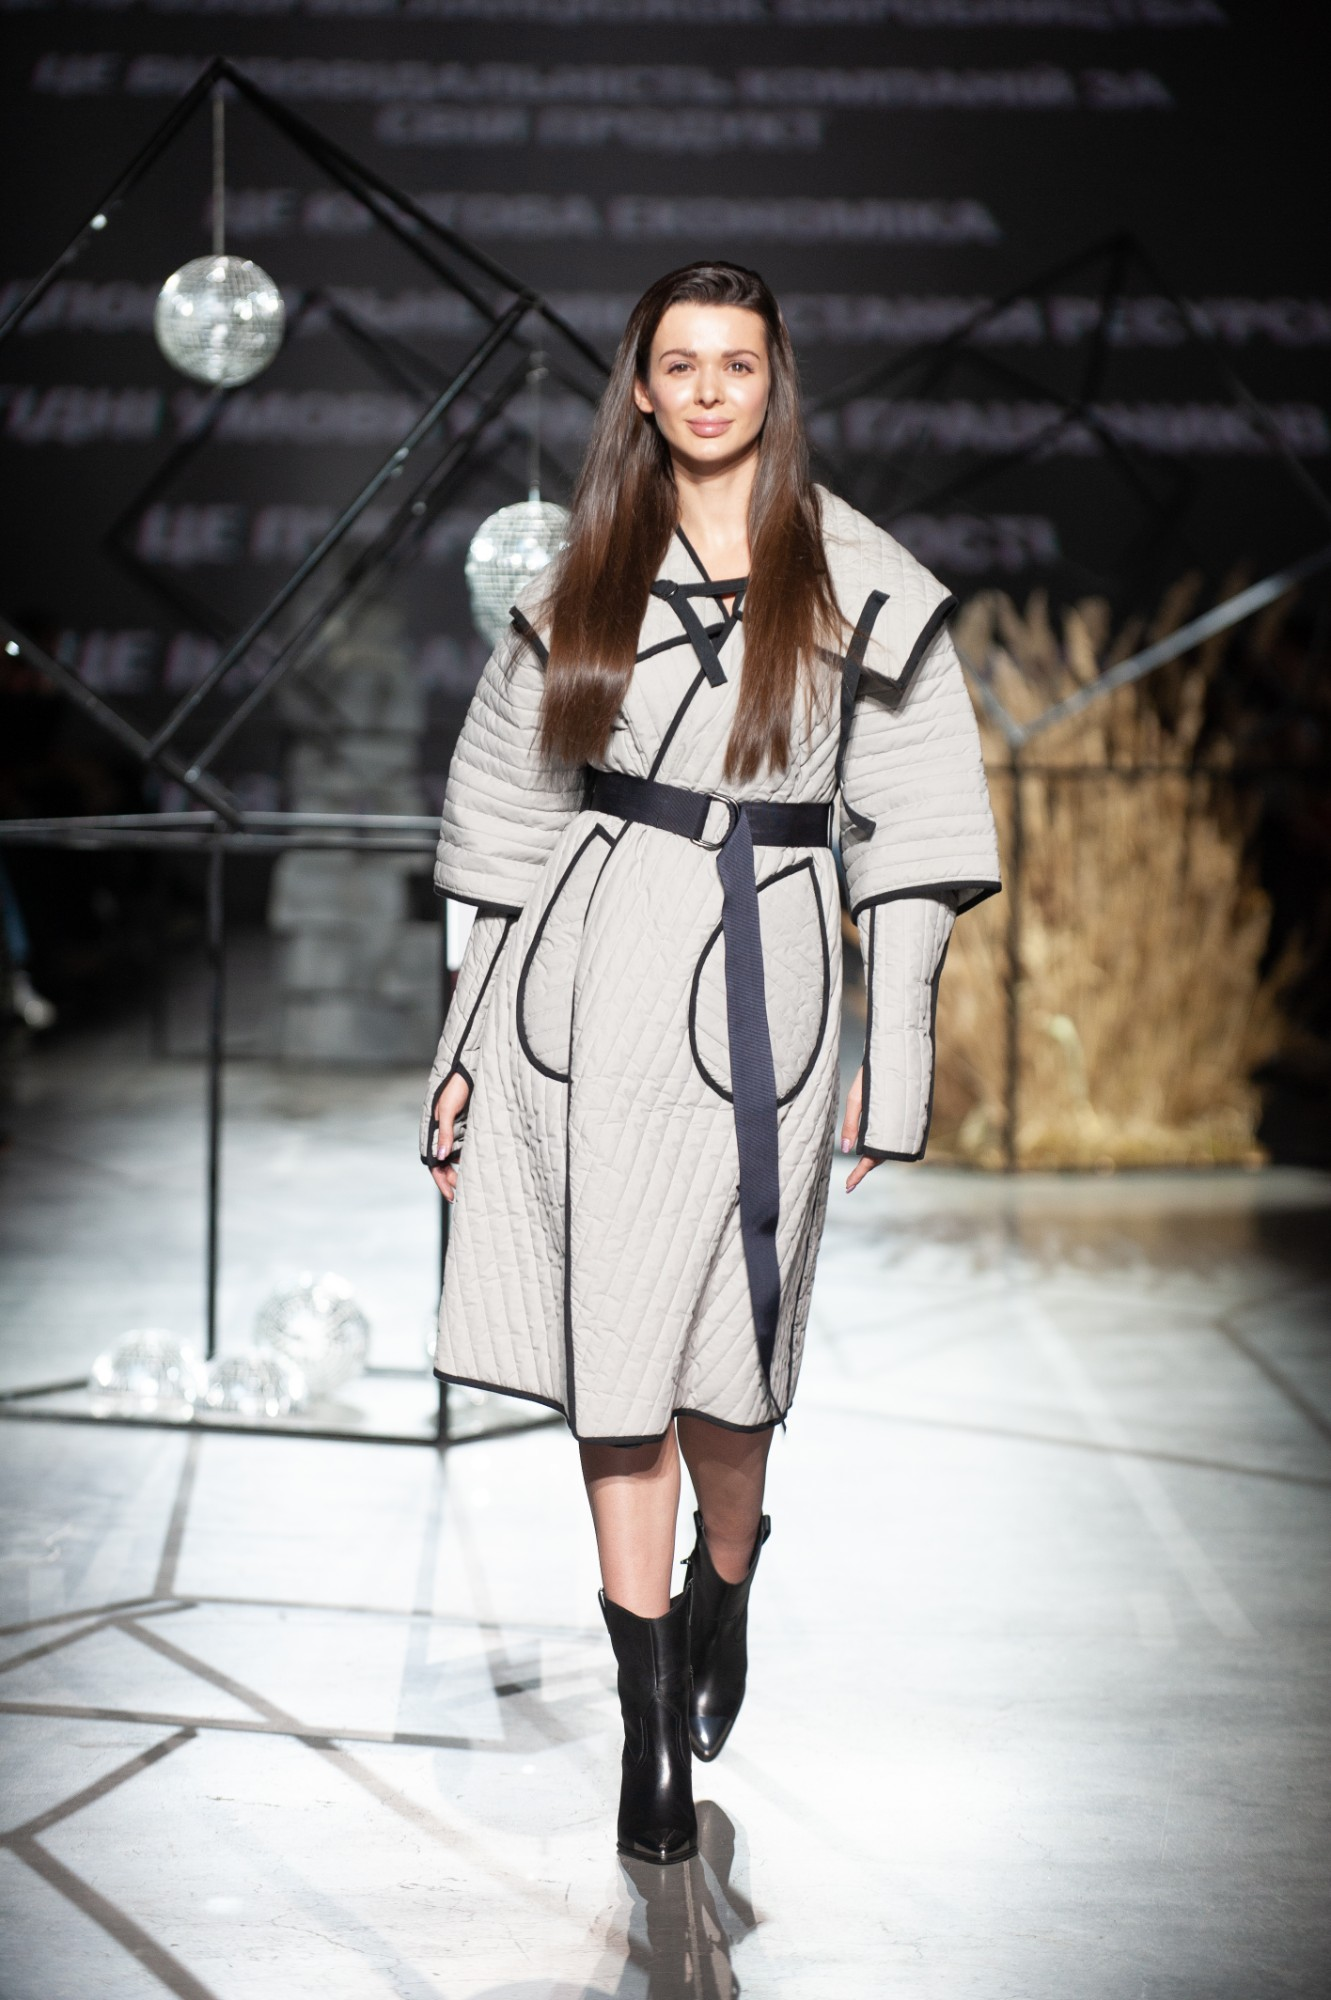 Ukrainian Fashion Week, BE SUSTAINABLE! Fashion Show, Courtesy of Ukrainian Fashion Week